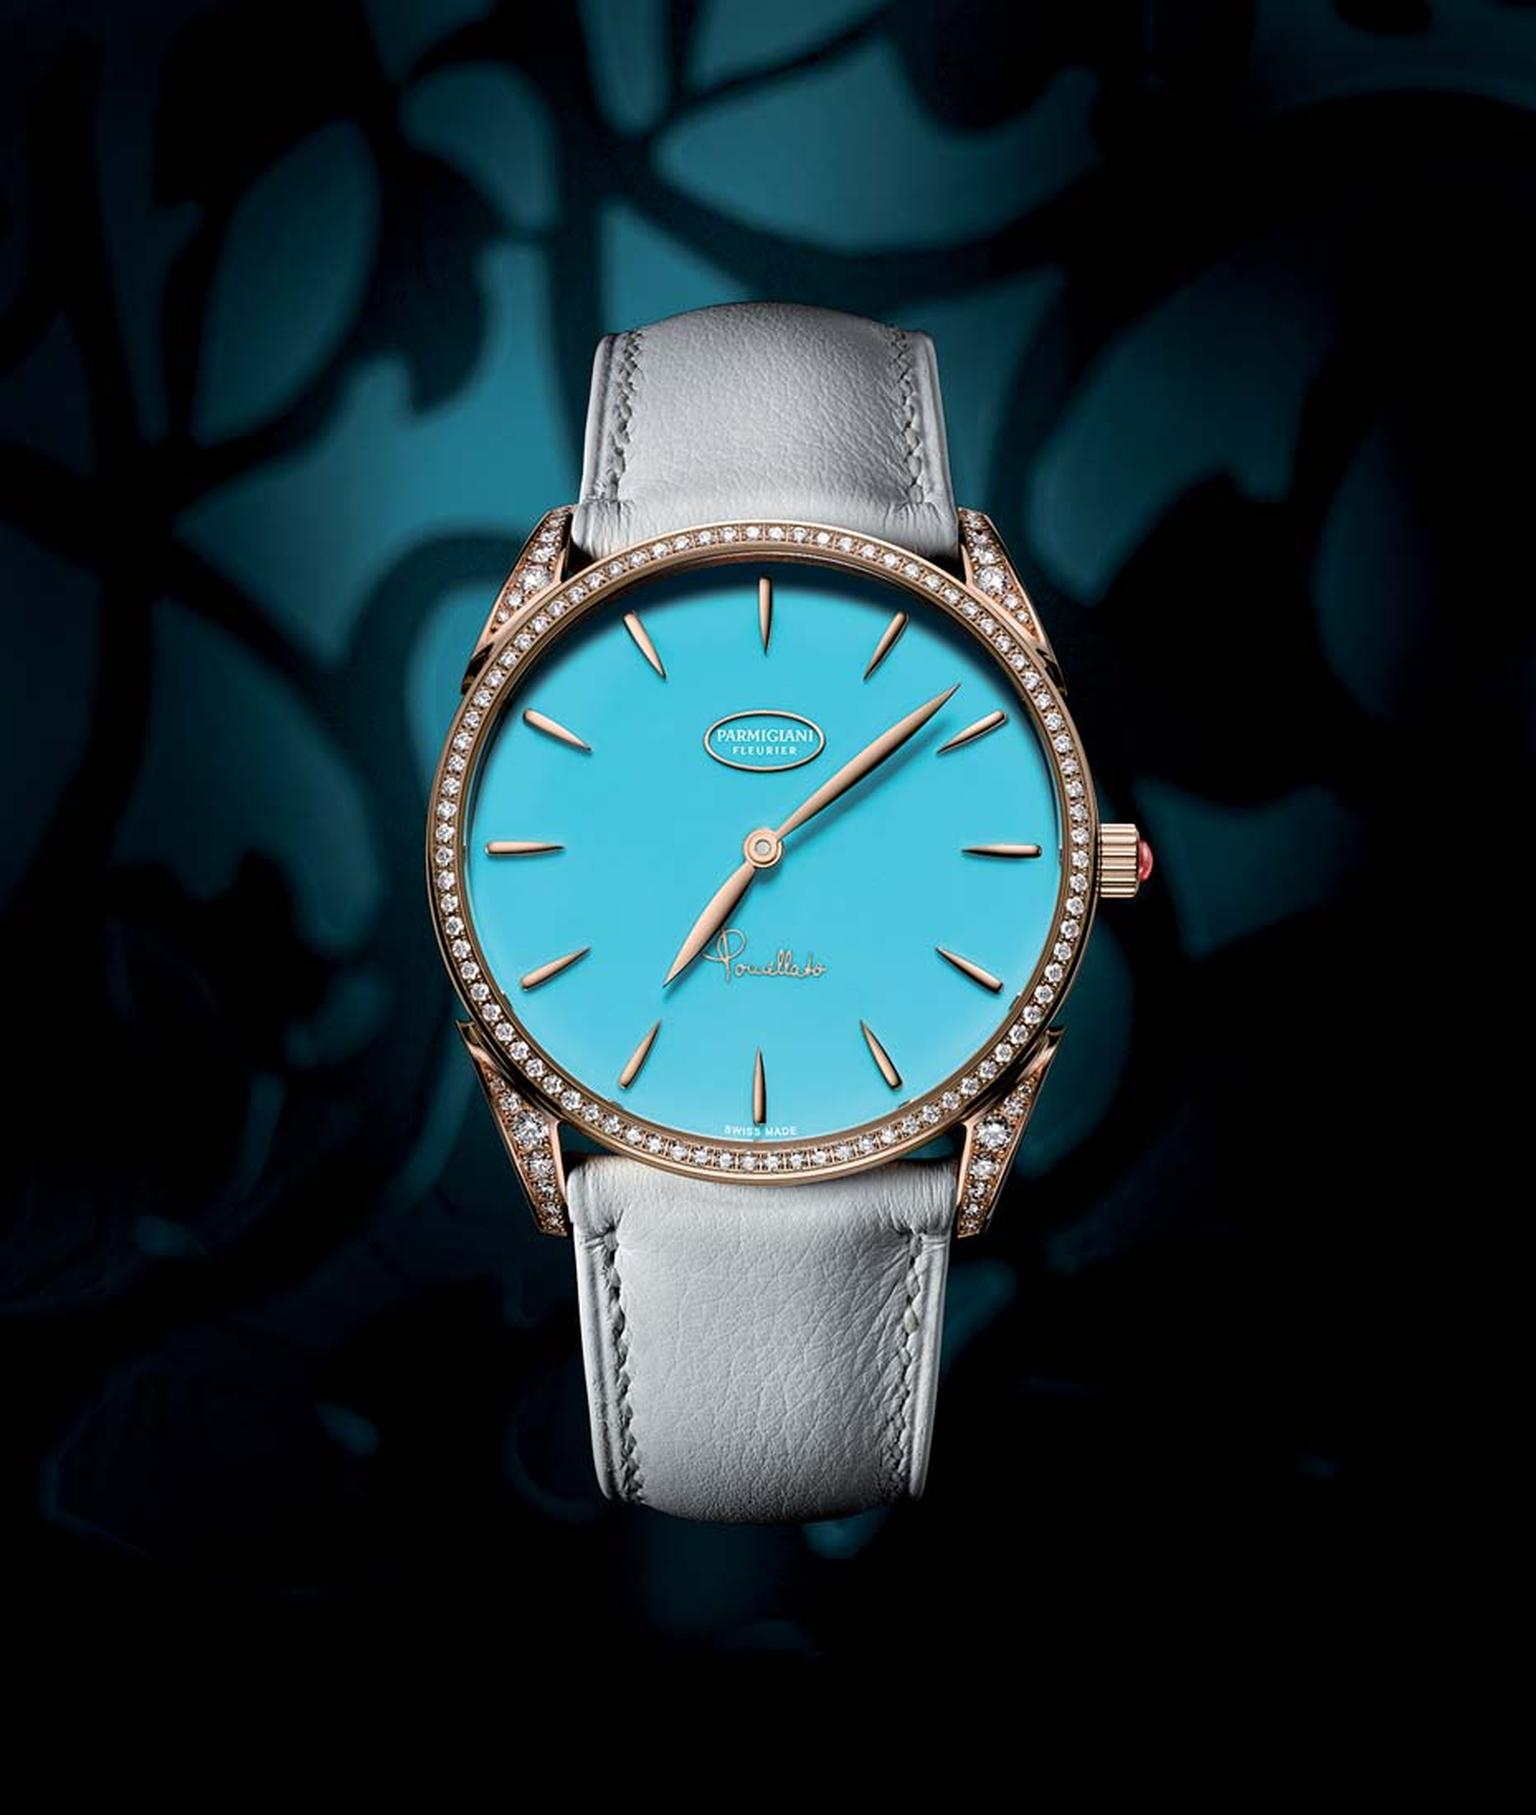 The Tonda Pomellato watch with a turquoise dial